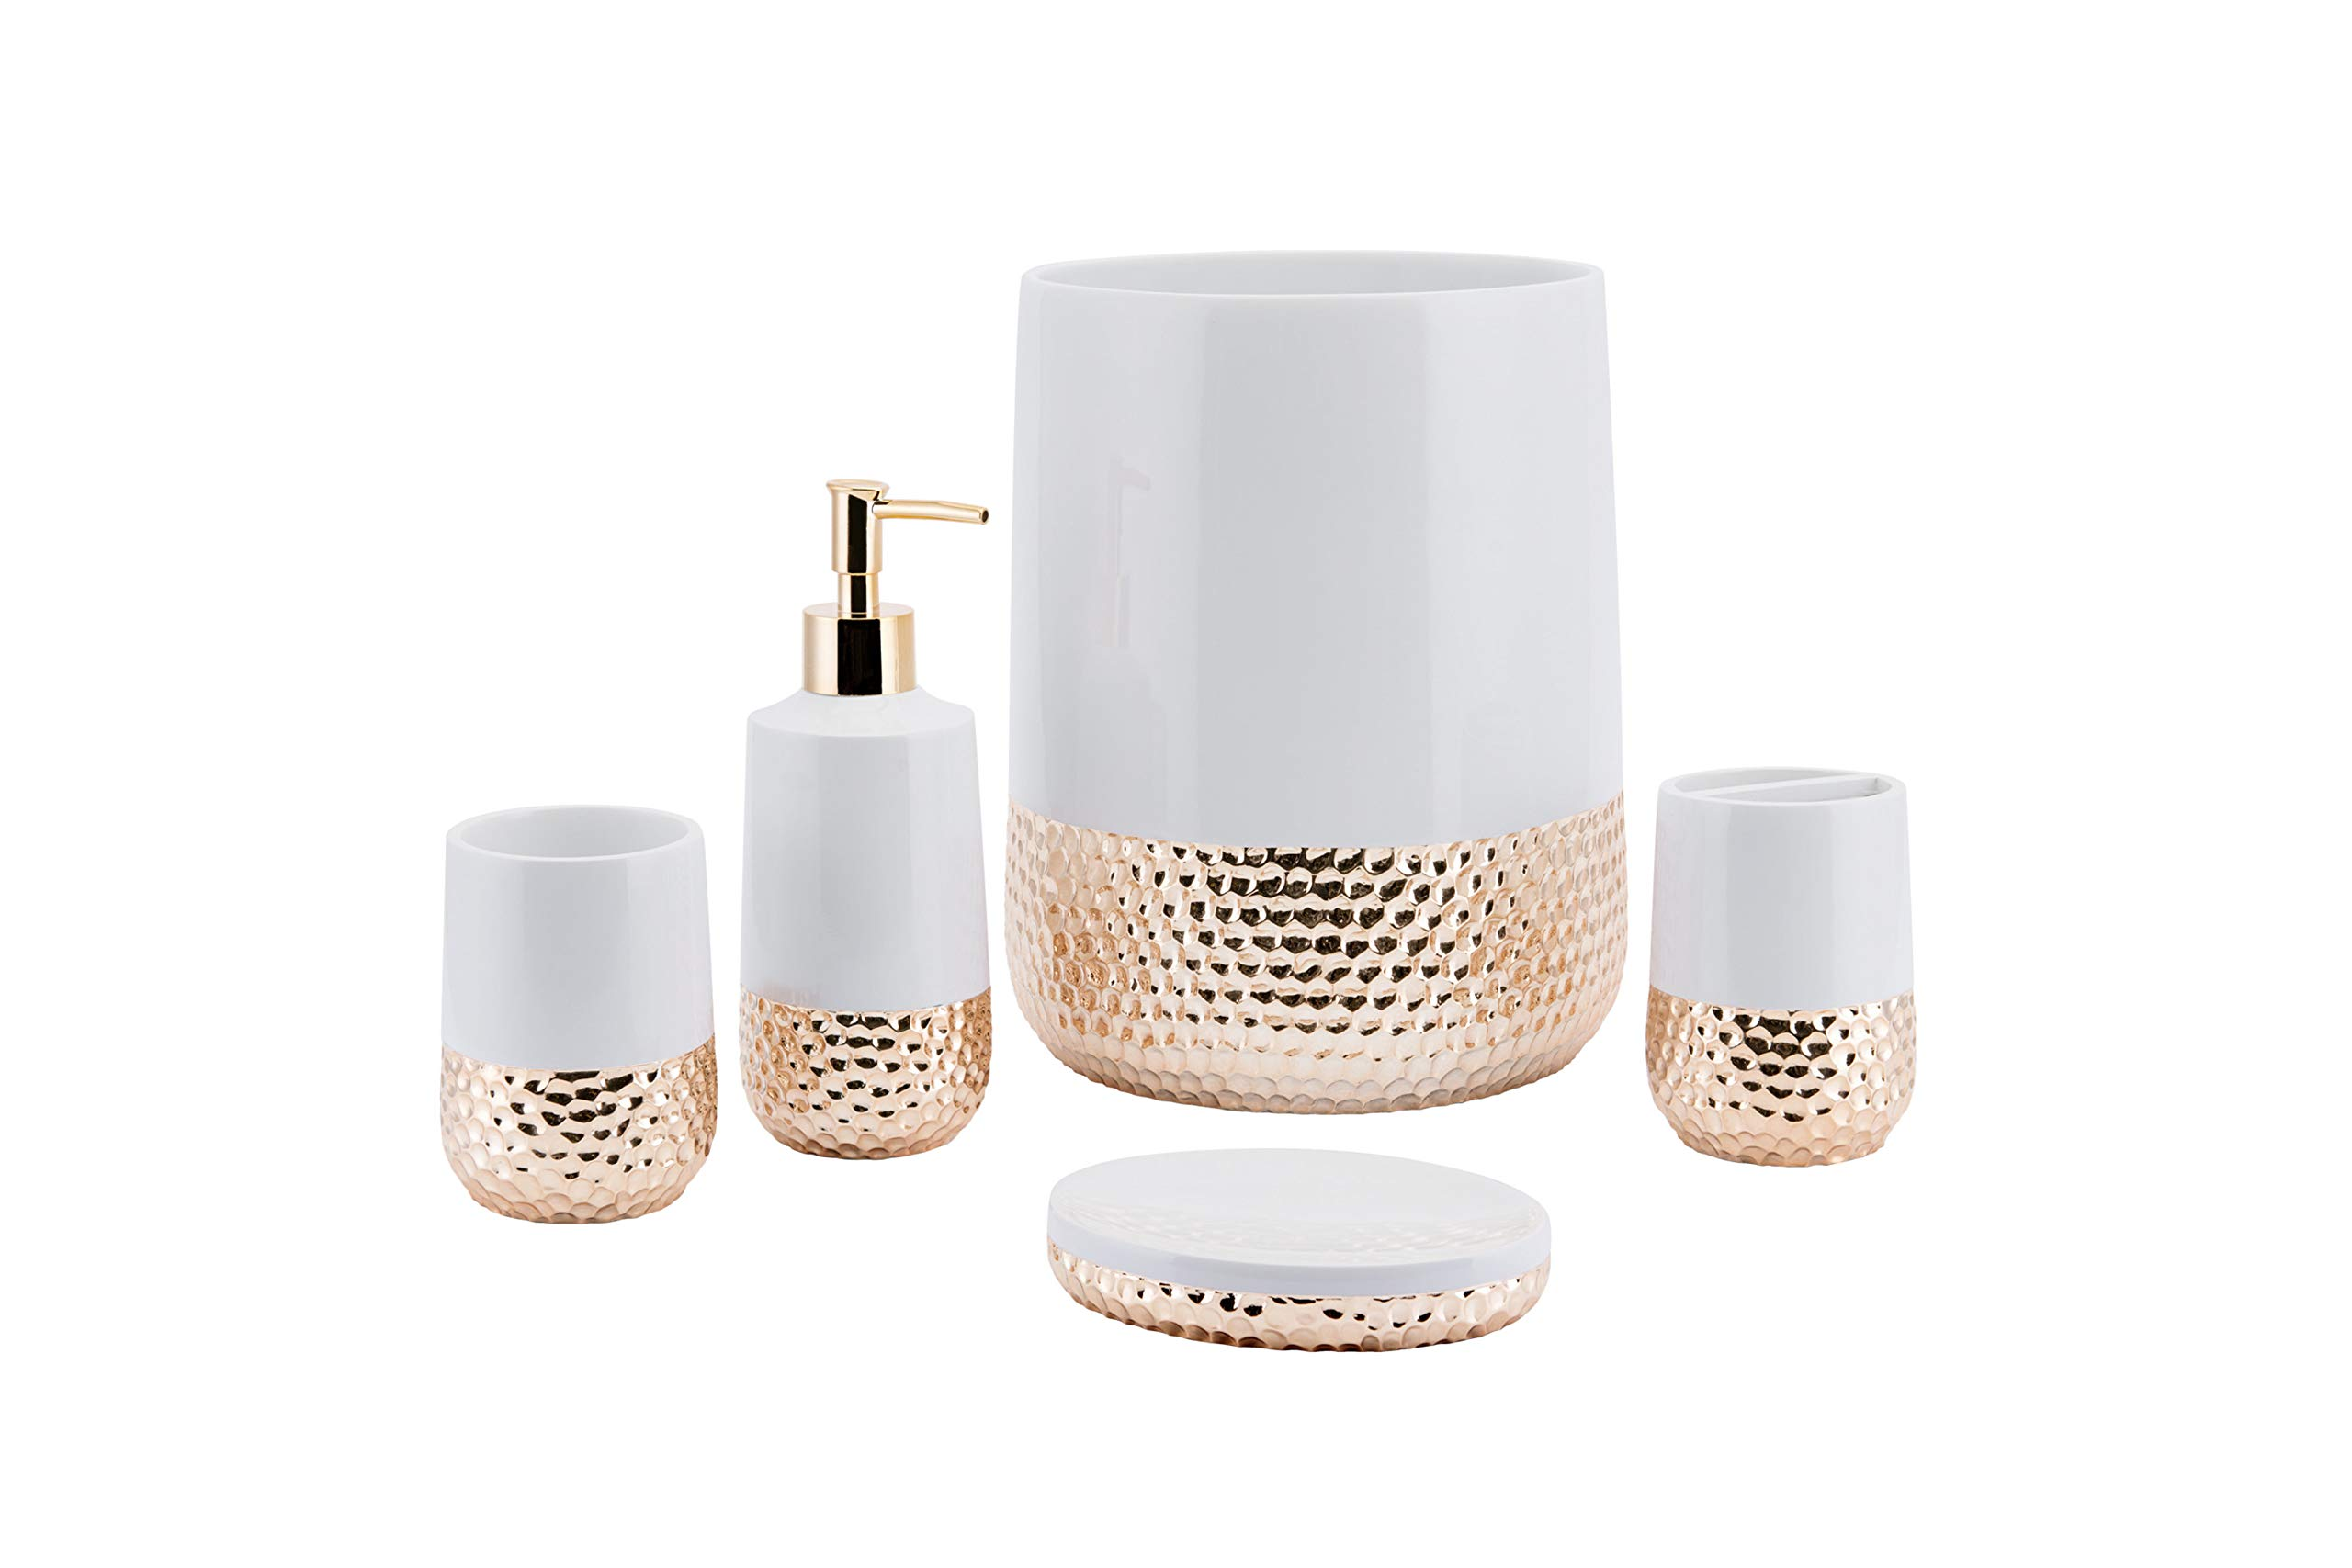 Allure Home Creations Titus Lotion Bottle Rose